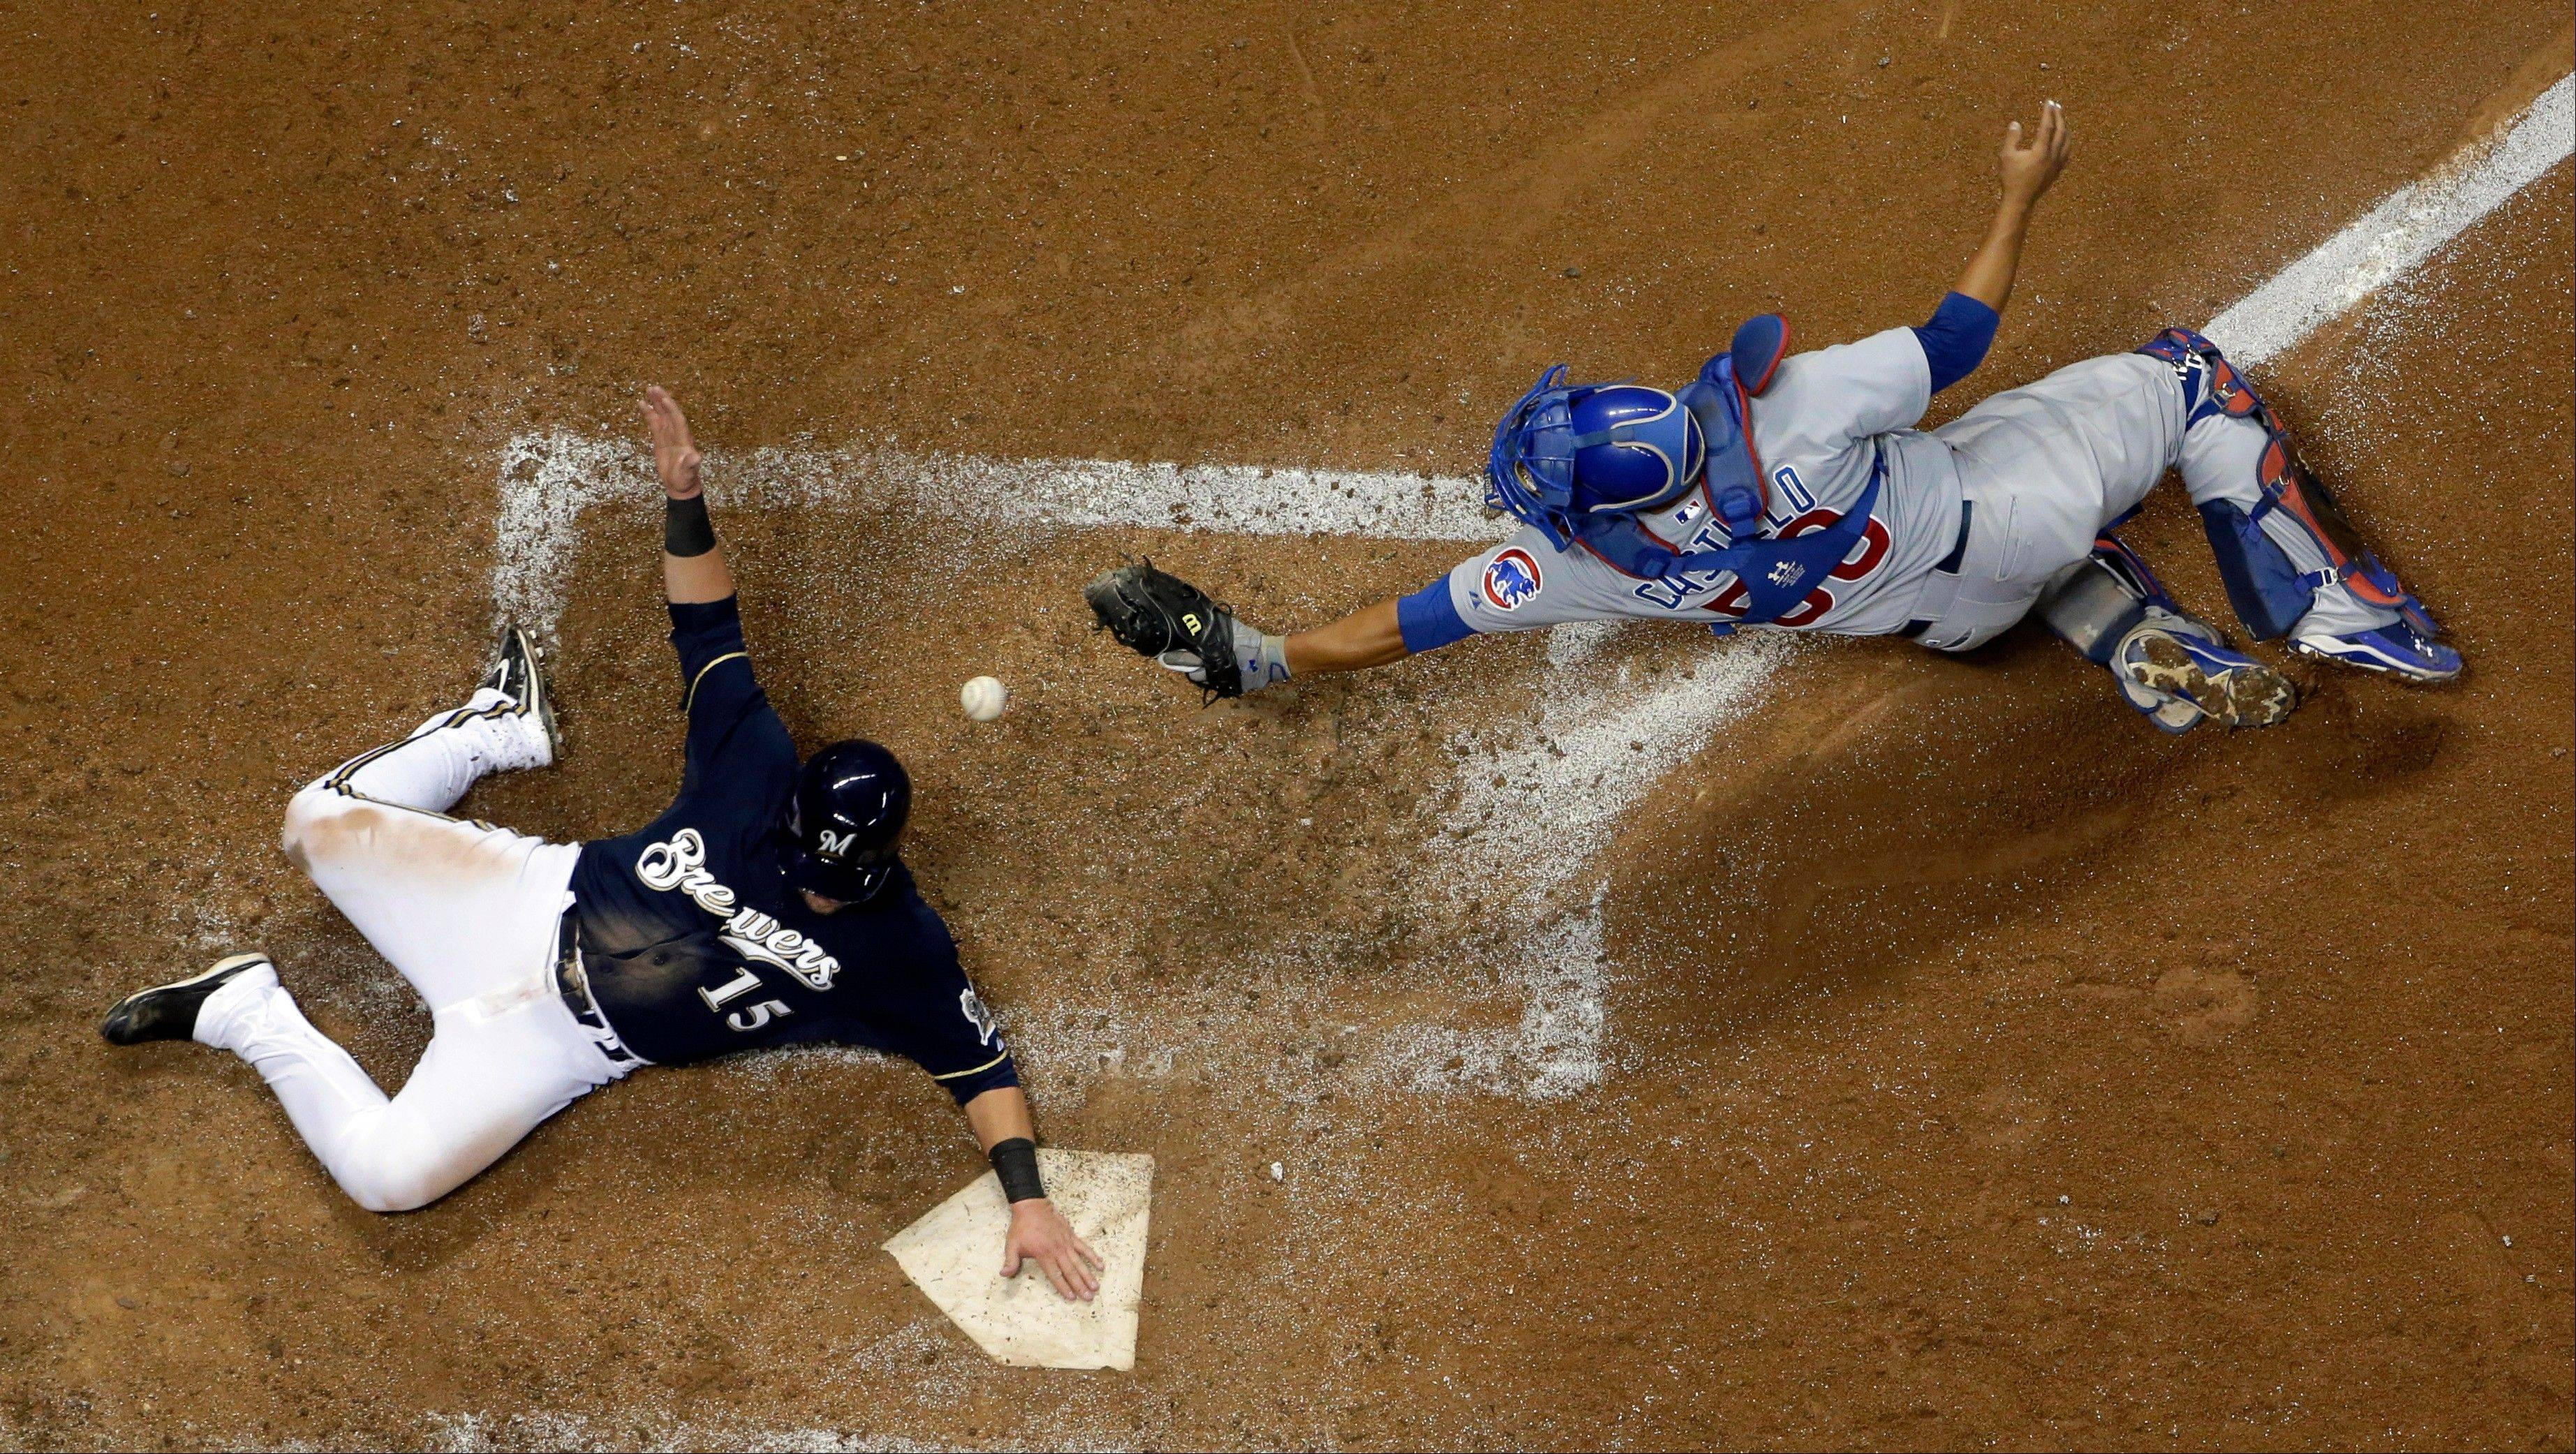 Milwaukee Brewers' Caleb Gindl slides safely past Chicago Cubs catcher Welington Castillo during the sixth inning of a baseball game, Monday, Sept. 16, 2013, in Milwaukee. Gindl scored from second on a hit by Yuniesky Betancourt.